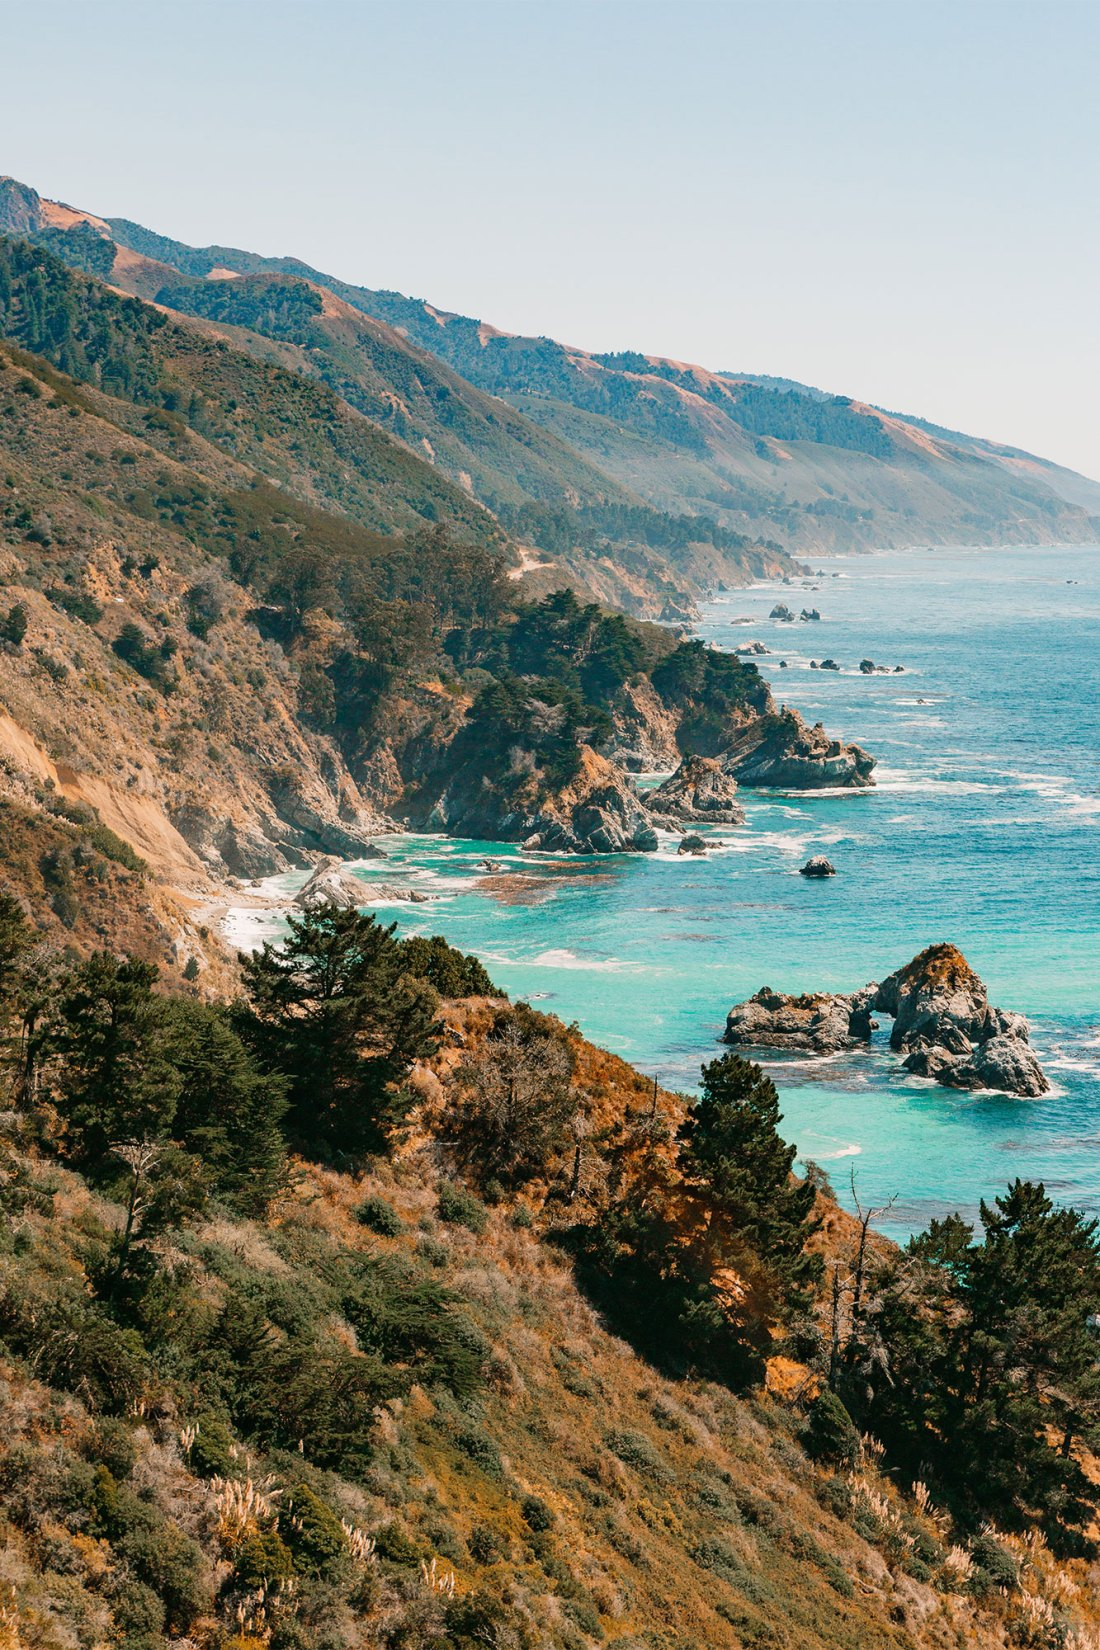 Sparkling turquoise water and ragged coastline of Julia Pfieffer Burns State Park Vista Poiint   as seen on the Local Love and Wanderlust Blog